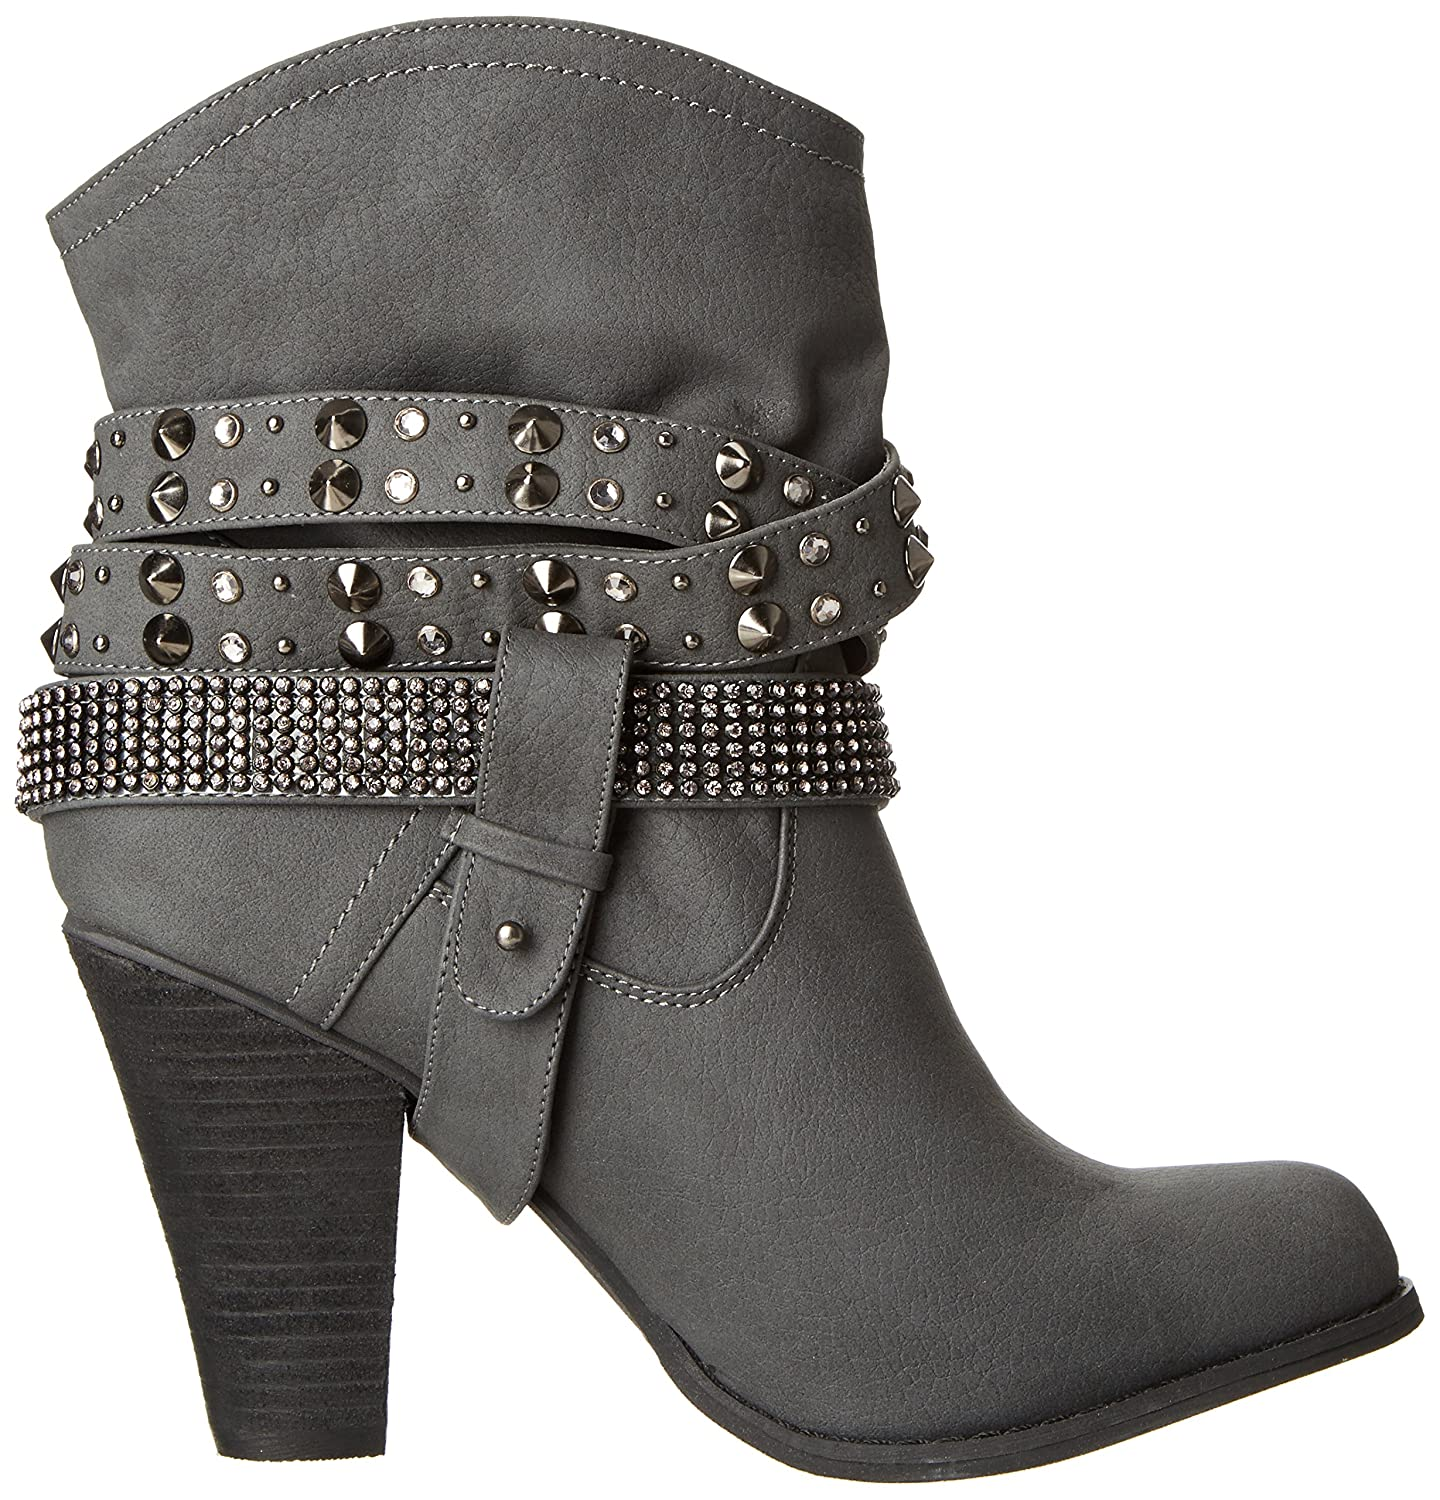 Not Rated B00JH394C6 Women's Double Dip Harness Boot B00JH394C6 Rated 10 B(M) US|Grey 3438f6